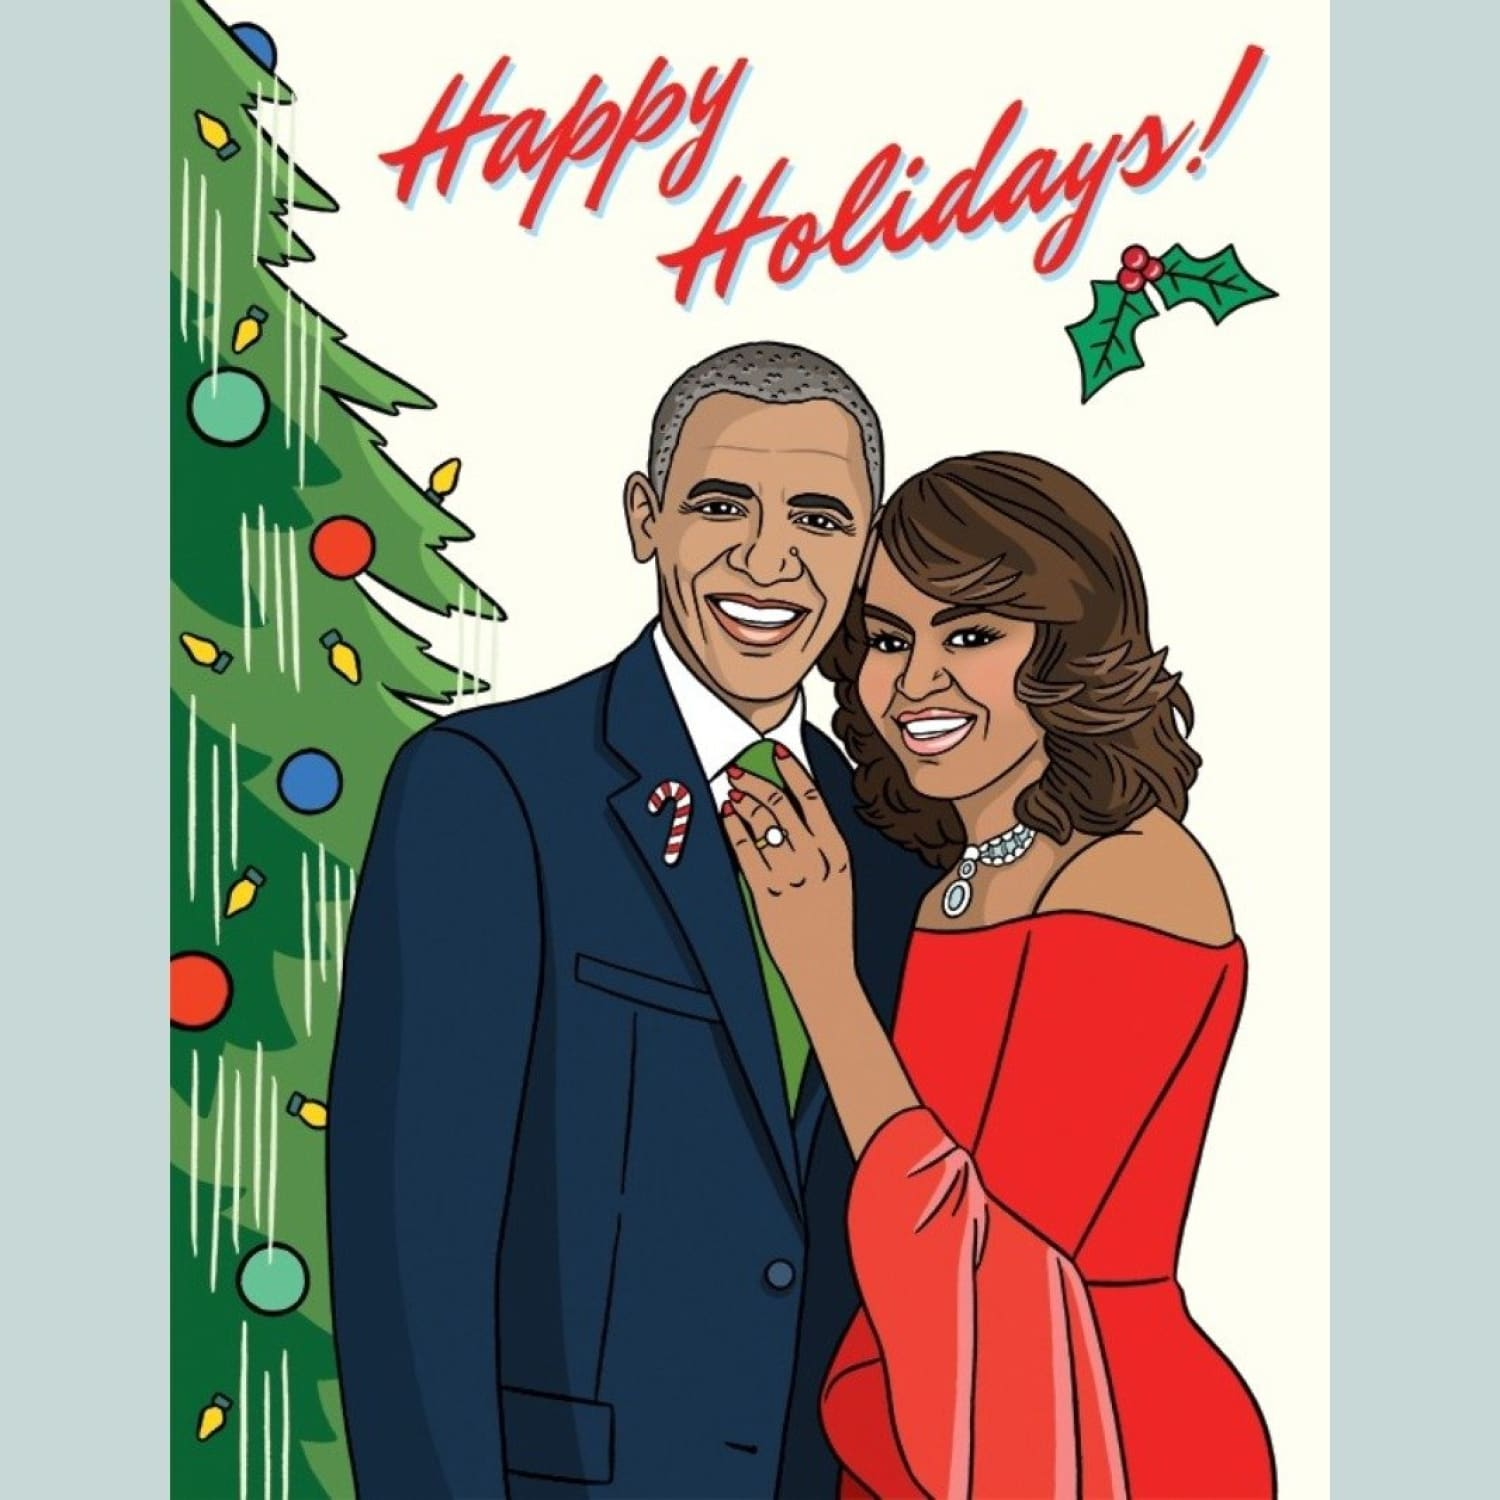 Obamas Holiday Card Christmas Cards - Holiday 2020 - Cards -